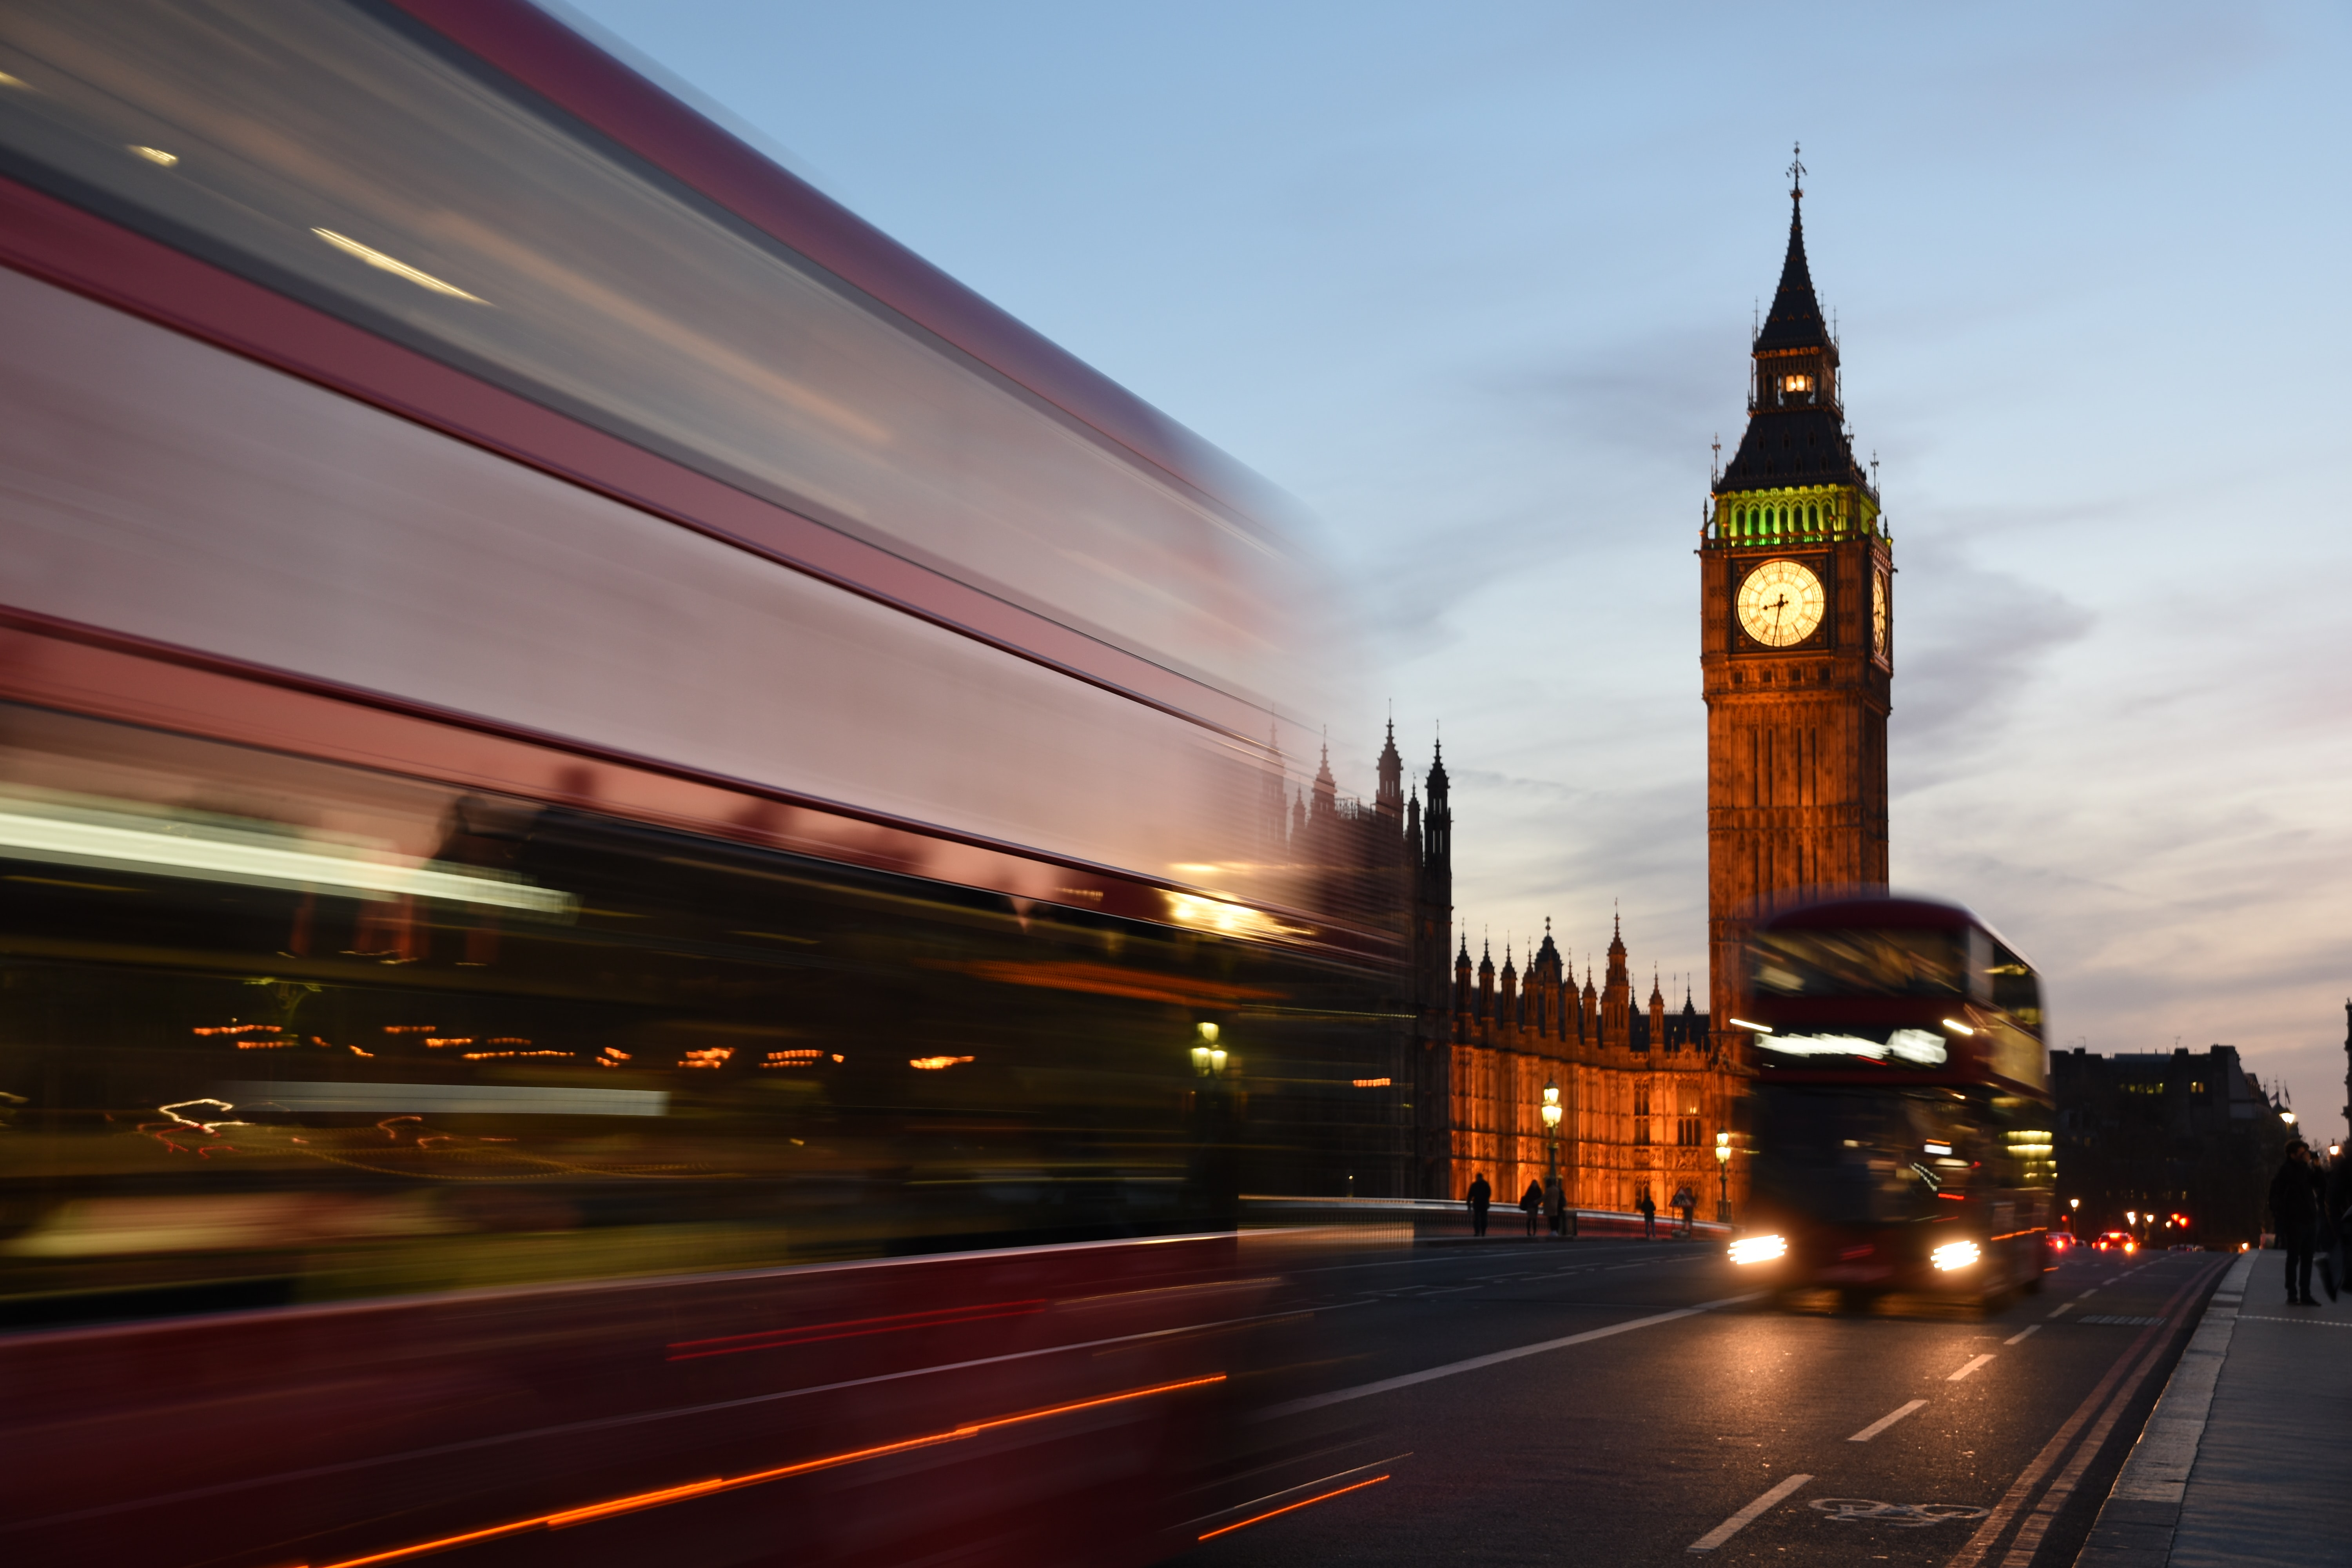 A long-exposure shot of double-decker buses near the Houses of Parliament in London